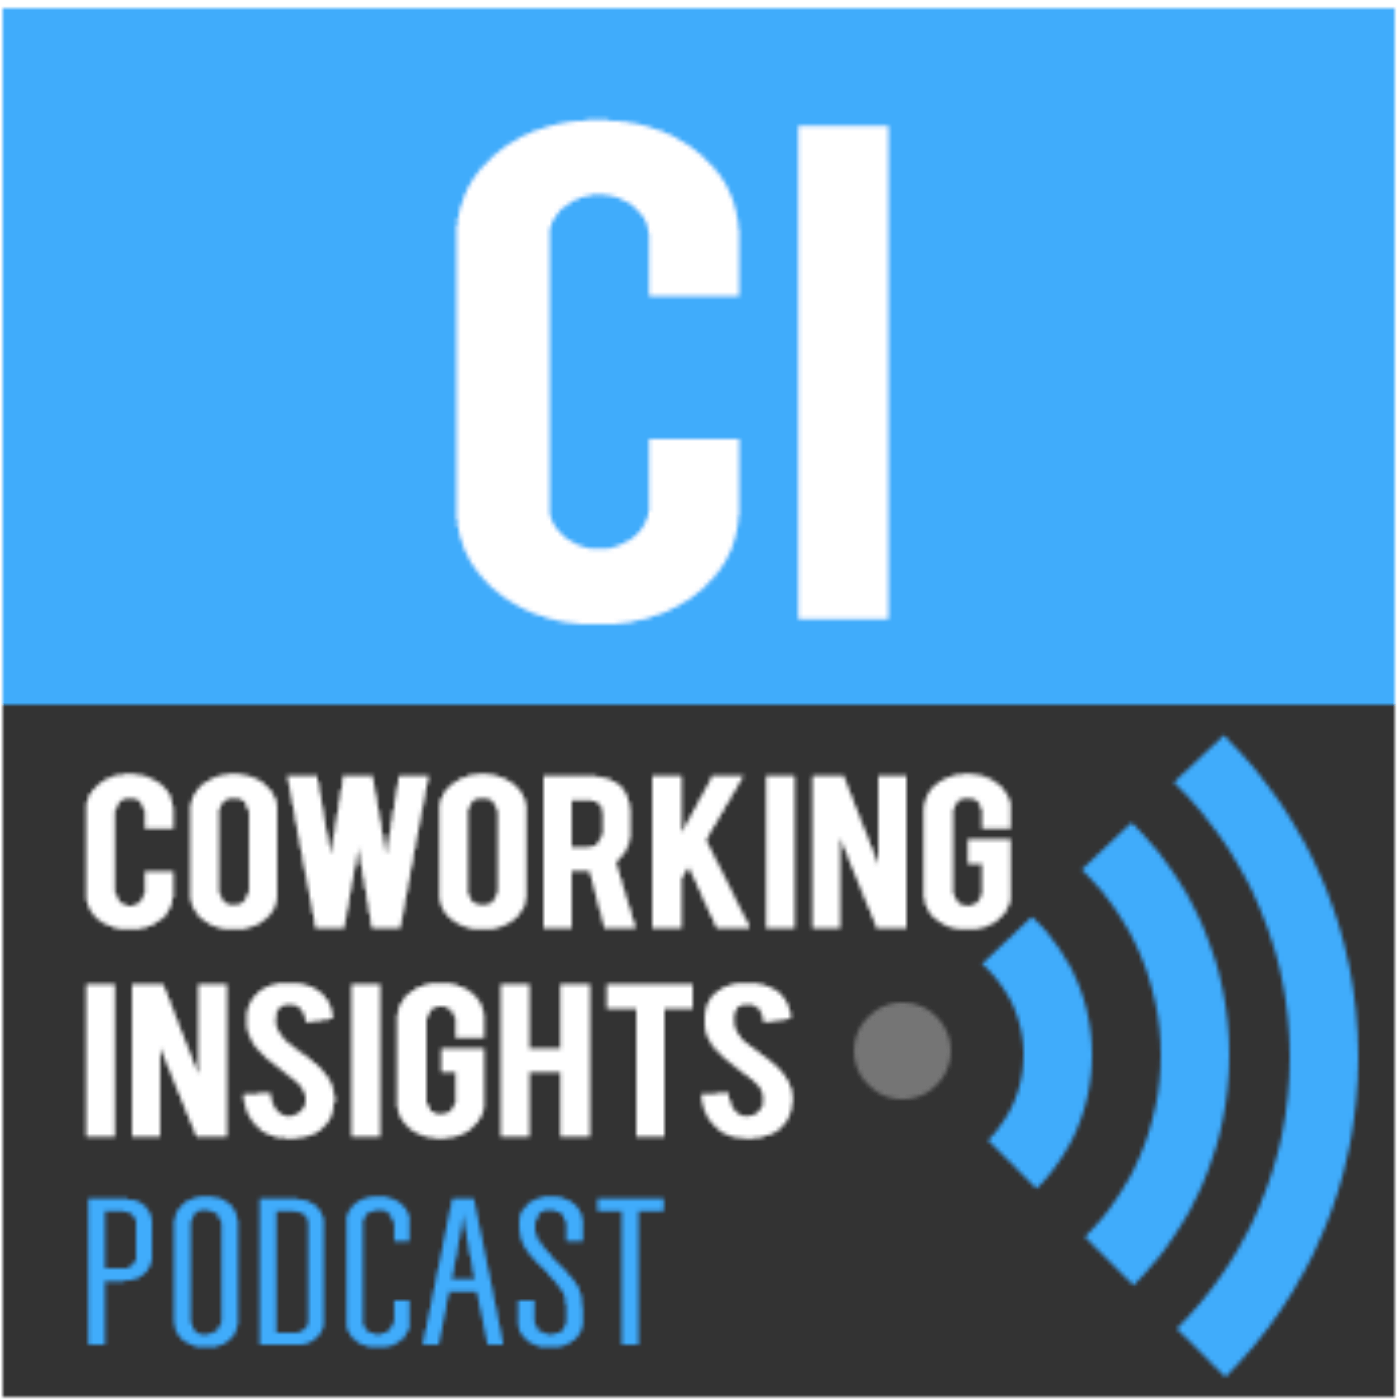 Ep 11 - What the Future Holds for Coworking and Remote Work